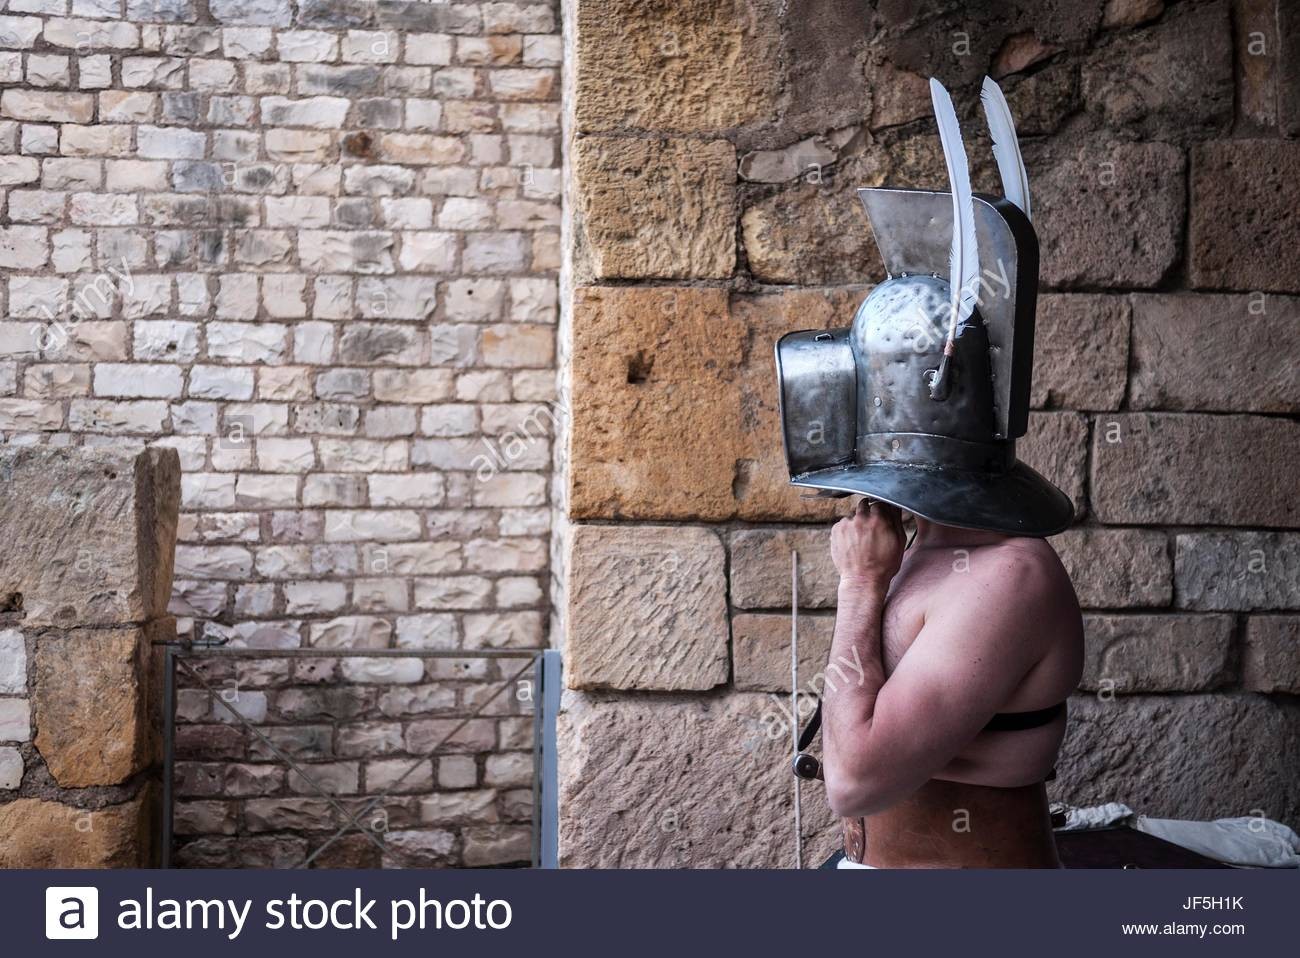 An actor getting dressed before going on stage. - Stock Image